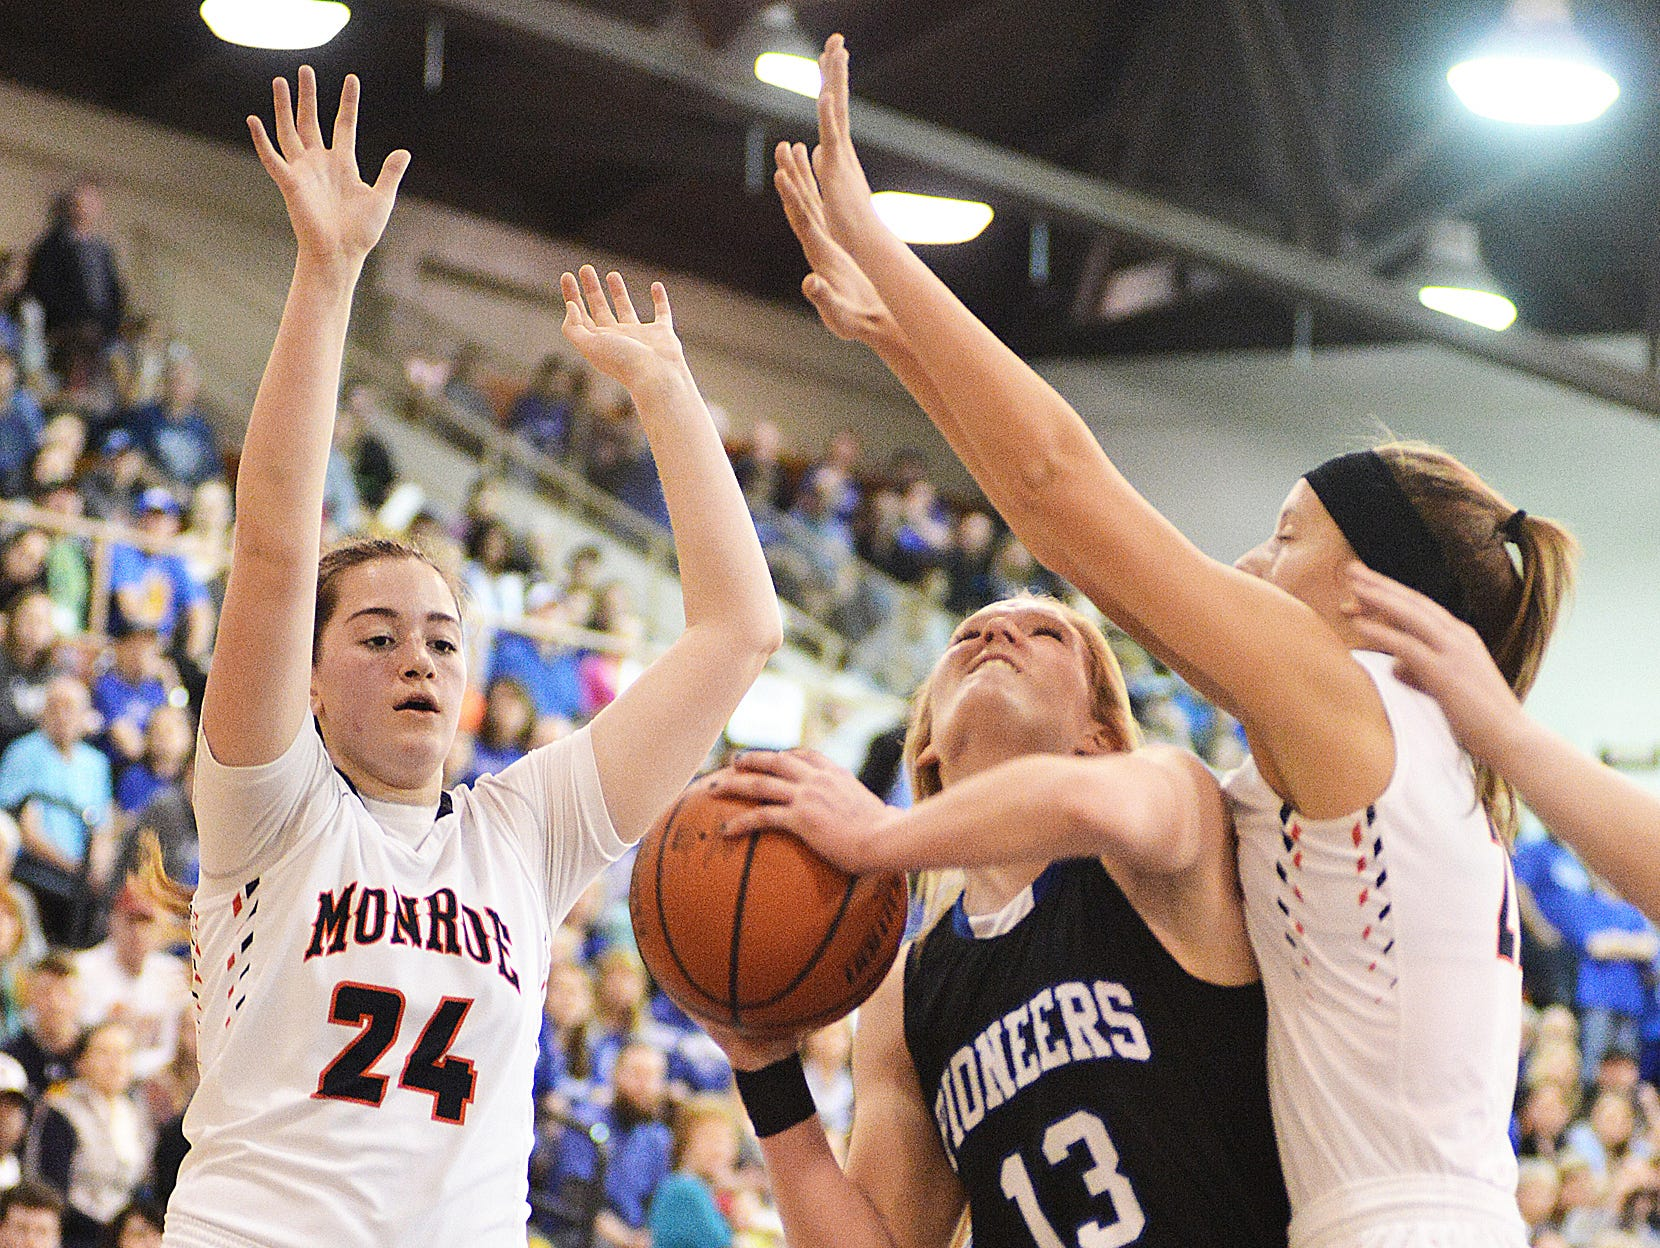 Western Mennonite's Madison Hull shoots the ball guarded by Monroe's Emily Stahl (24) and Kyndal Martin.